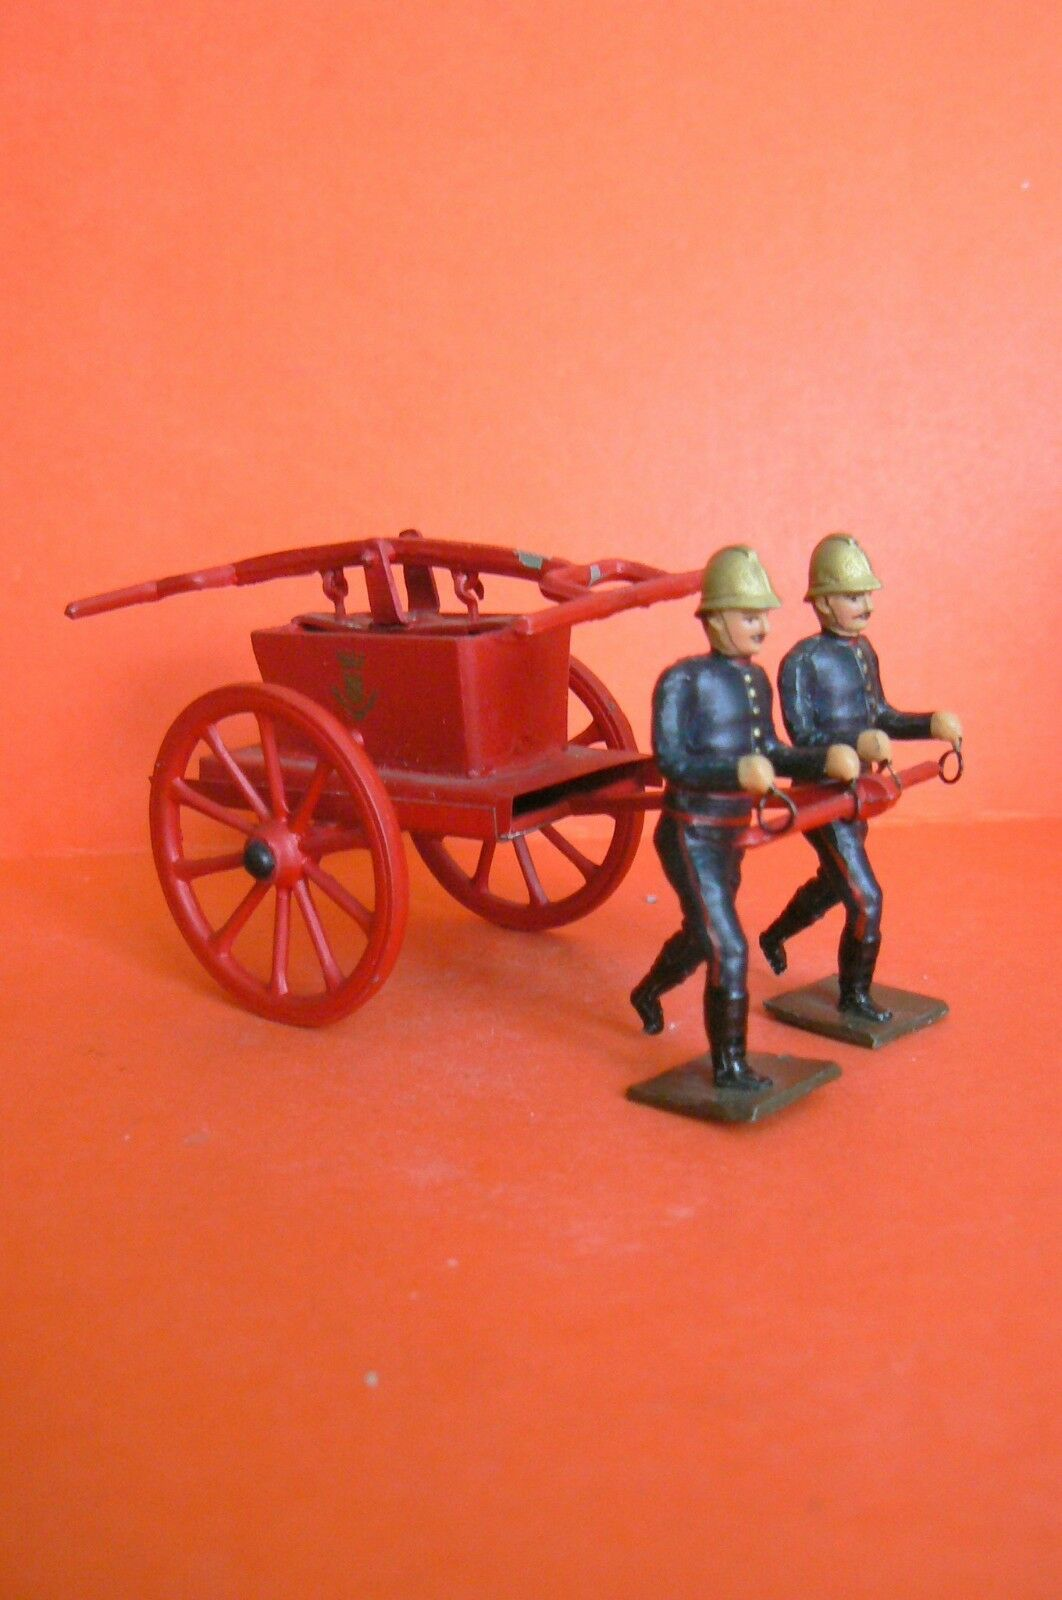 CBG MIGNOT OLD   FIREFIGHTERS PARIS   REEL AND ITS 2 FIREFIGHTERS